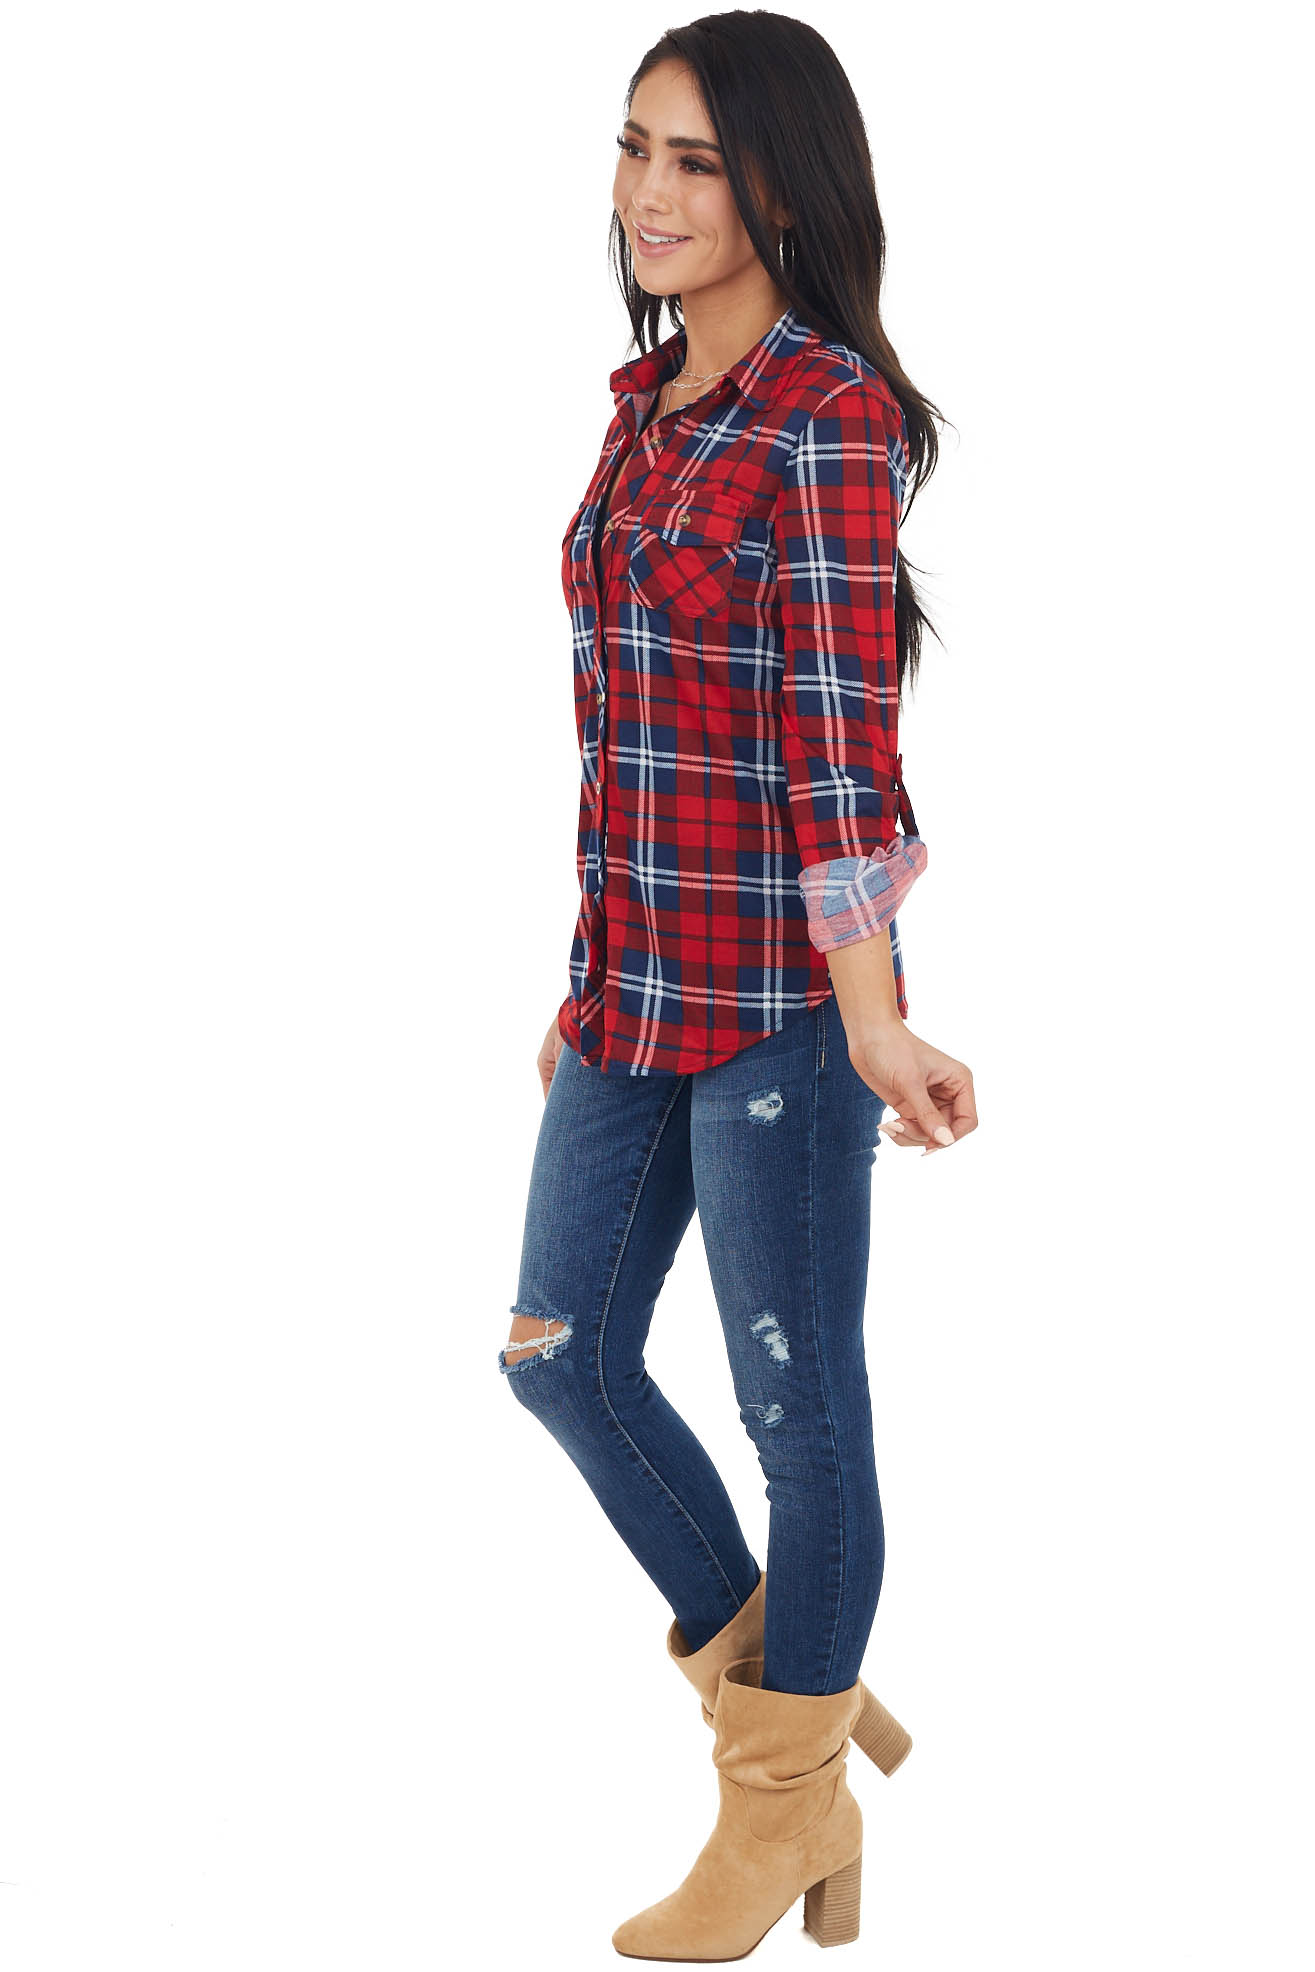 Cherry and Navy Plaid Button Up Top with Chest Pockets